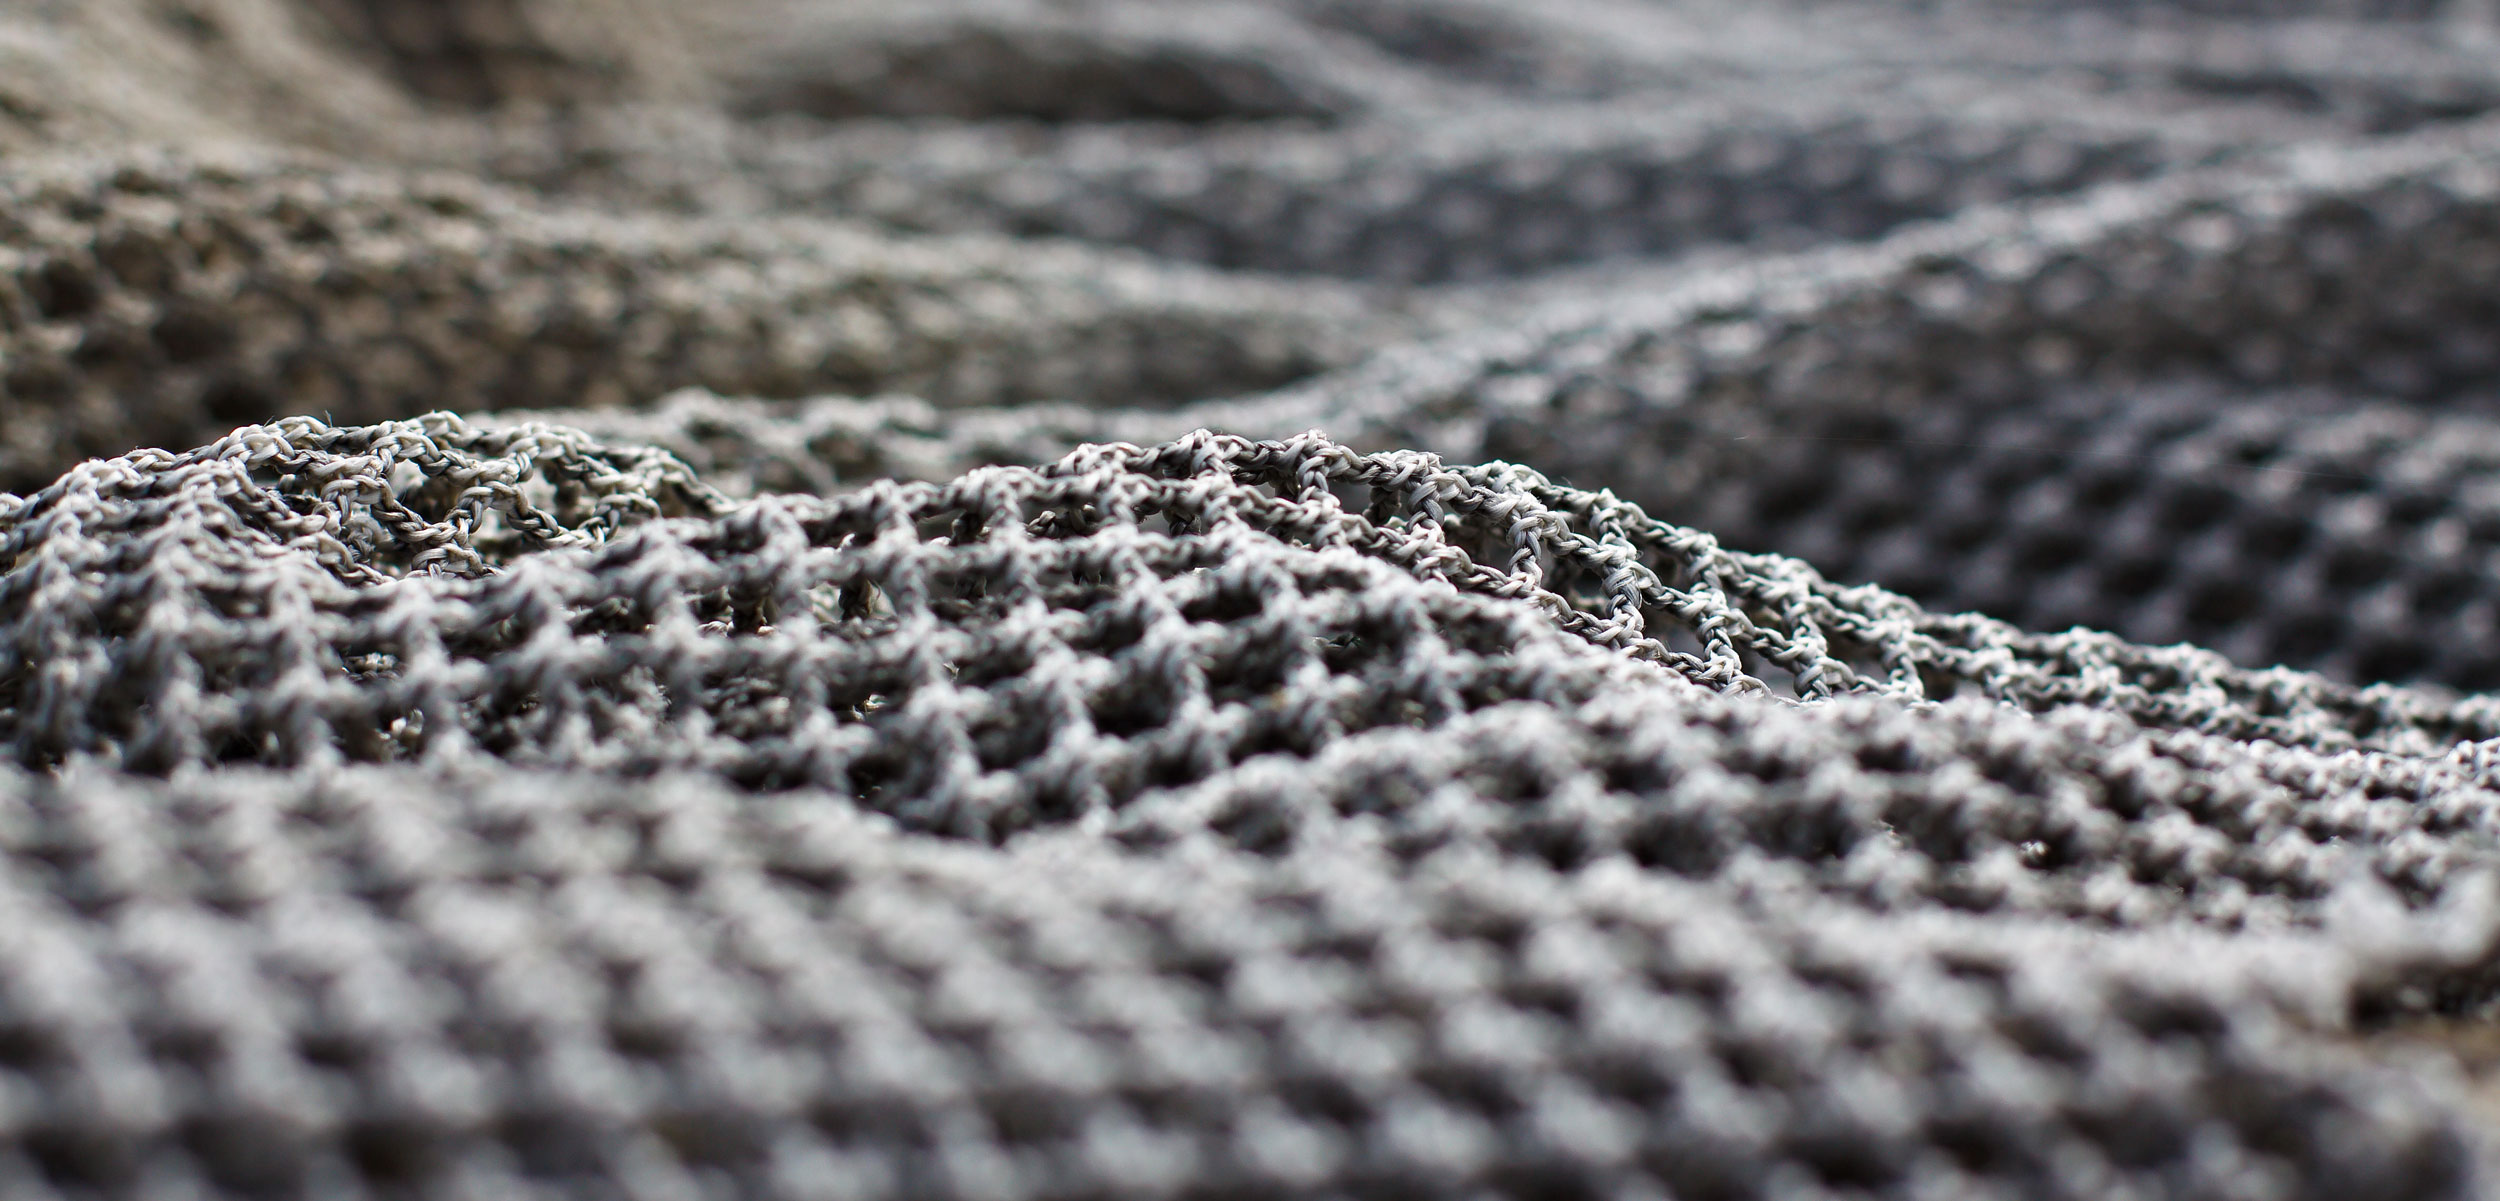 close up photo of a fishing net